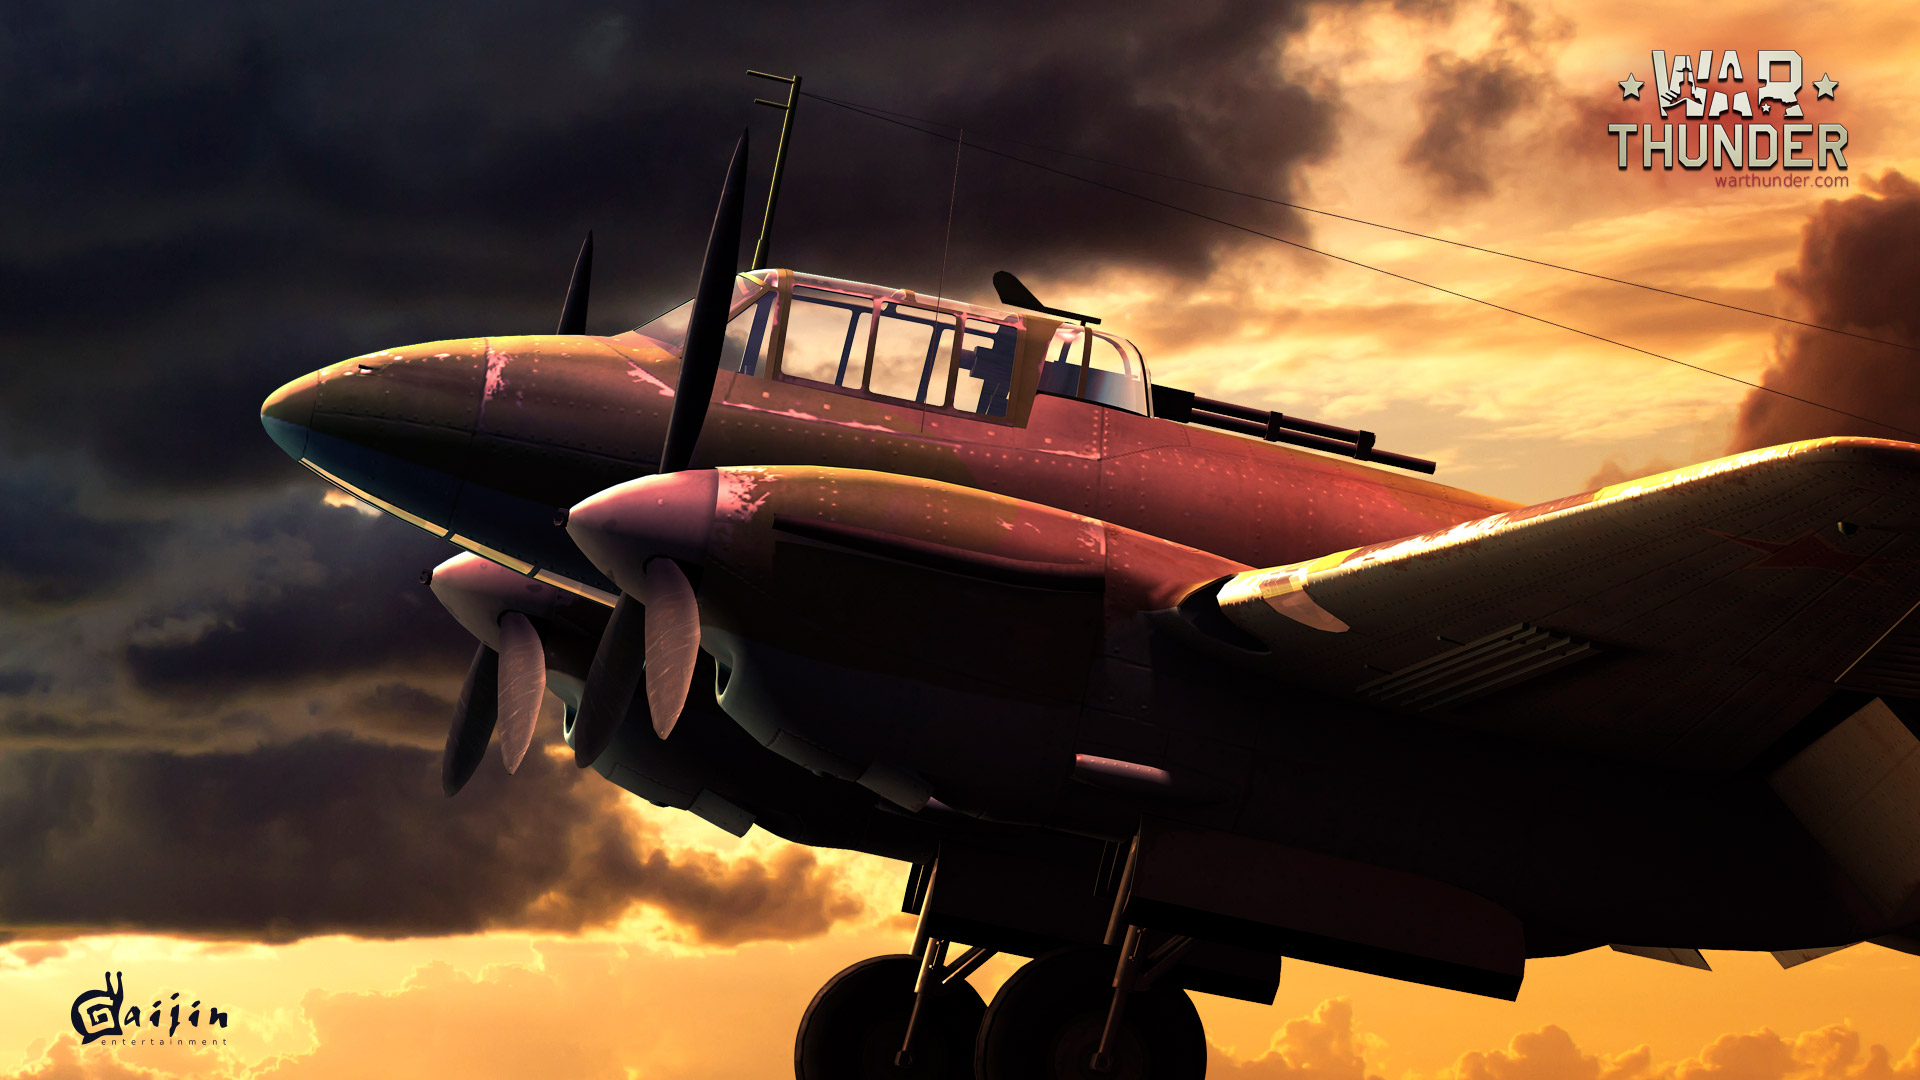 Free War Thunder Wallpaper in 1920x1080